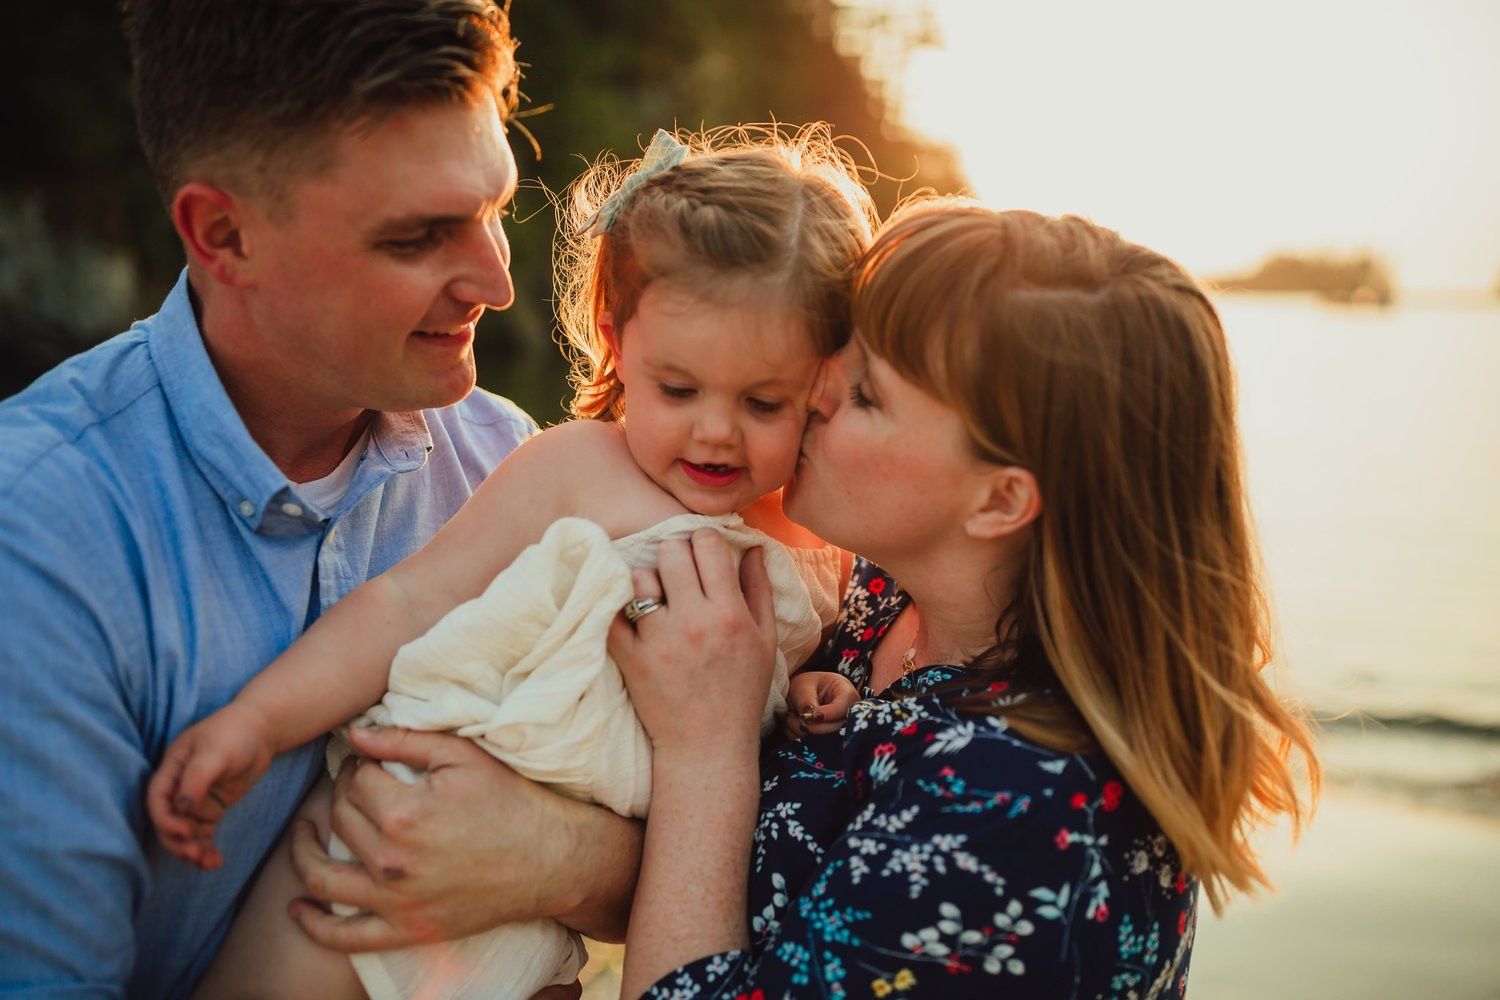 """I CAN'T EVEN BEGIN TO DESCRIBE HOW PERFECT THEY ARE."" - ""Kara captured my family the way I see us - the pride in my husband's eyes, my daughter's mischievous laugh. I am so grateful for this precious gift.""- Carly"